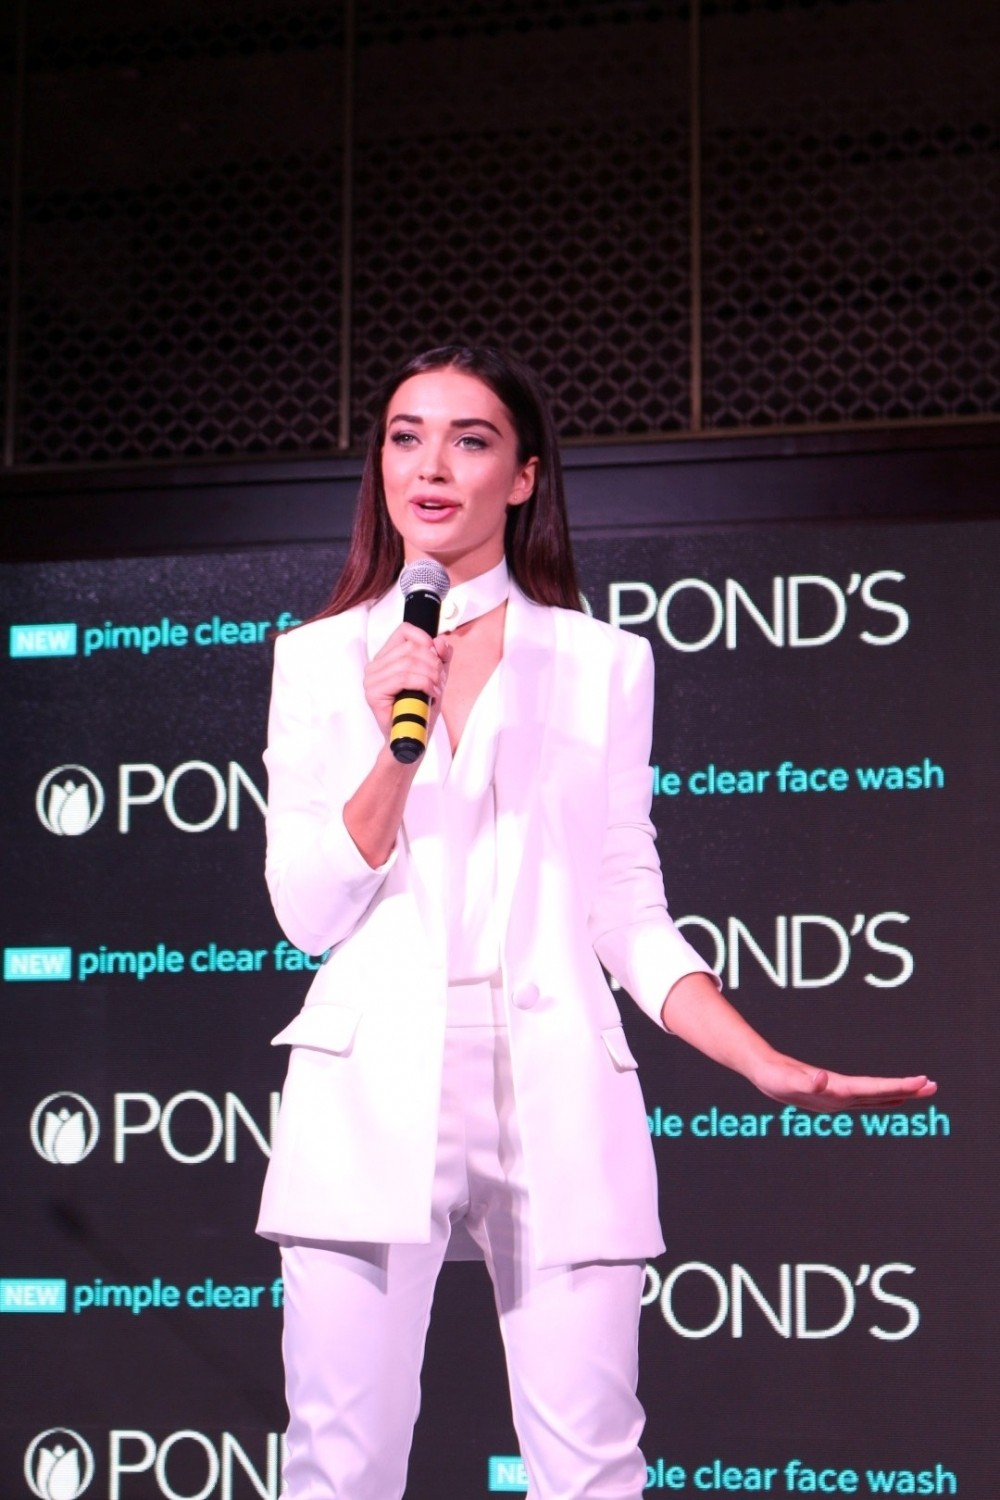 Ileana D'Cruz,Amy Jackson,Ileana D'Cruz launches Pond's new skincare products,Amy Jackson launches Pond's new skincare products,Pond's new skincare products,Amy Jackson latest pics,Amy Jackson latest images,Amy Jackson latest phot